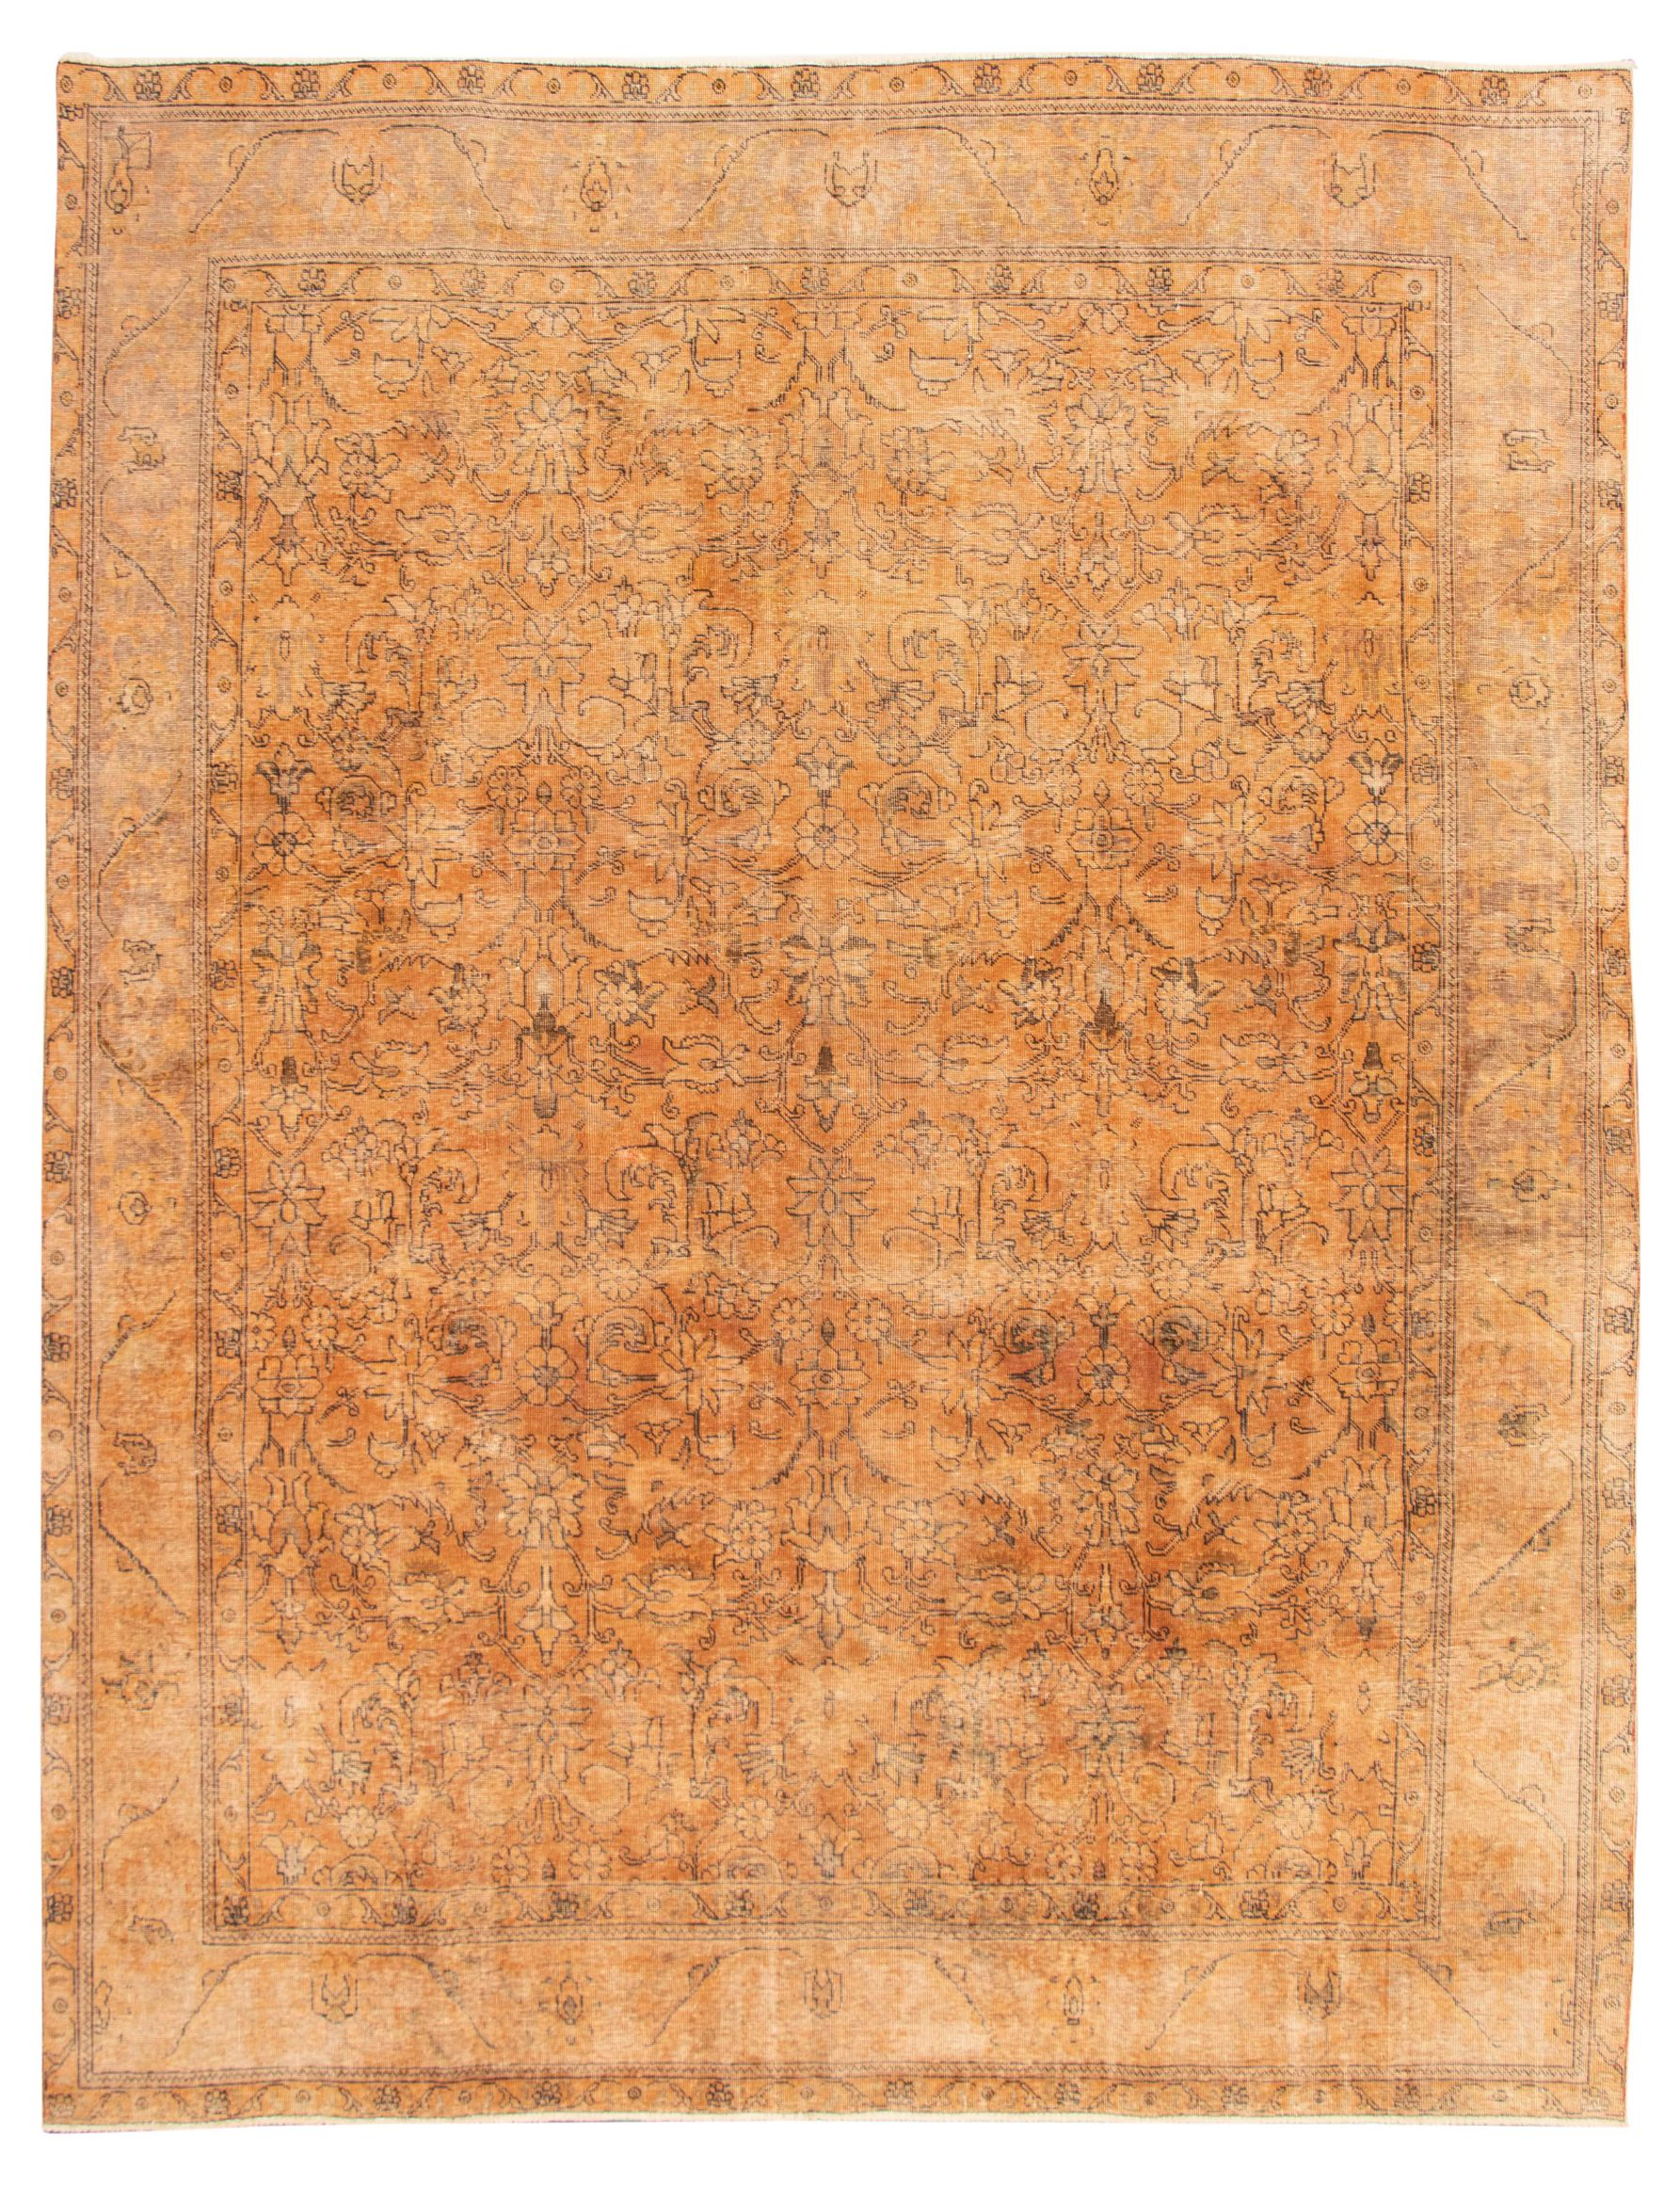 """Hand-knotted Color Transition Light Orange Wool Rug 9'8"""" x 12'6"""" Size: 9'8"""" x 12'6"""""""